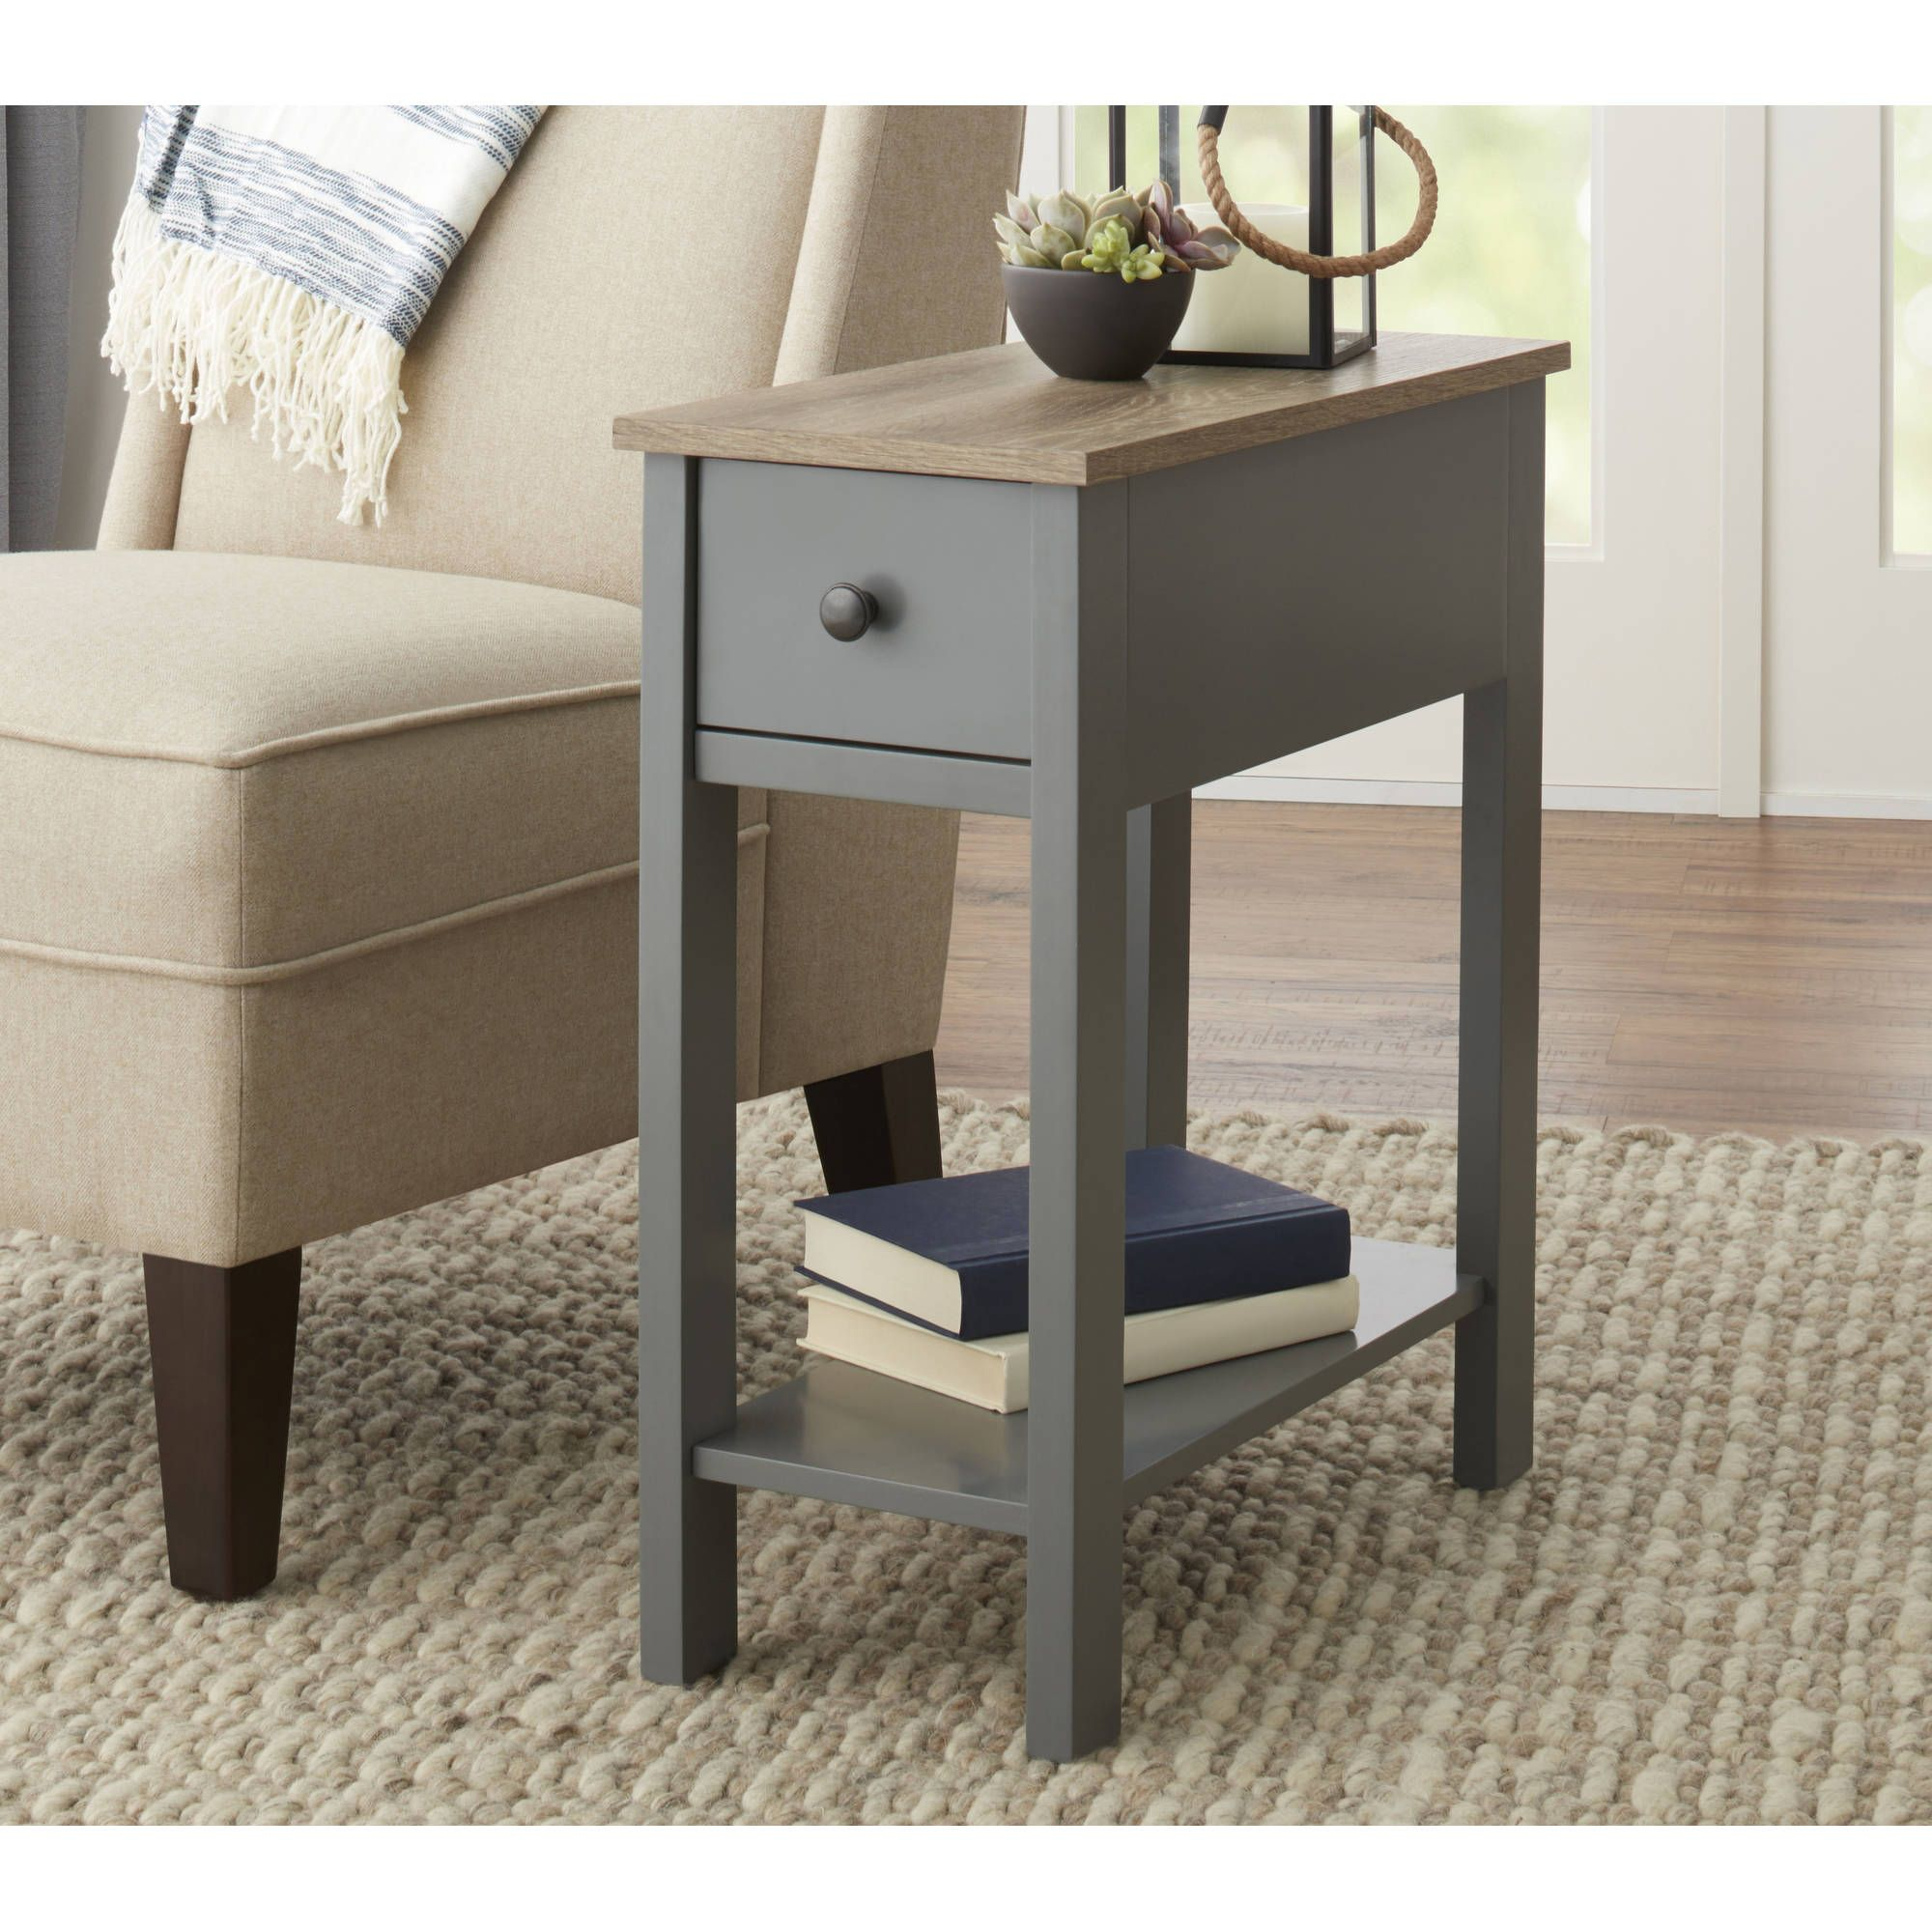 Home in 2020 Solid wood coffee table, Coffee table